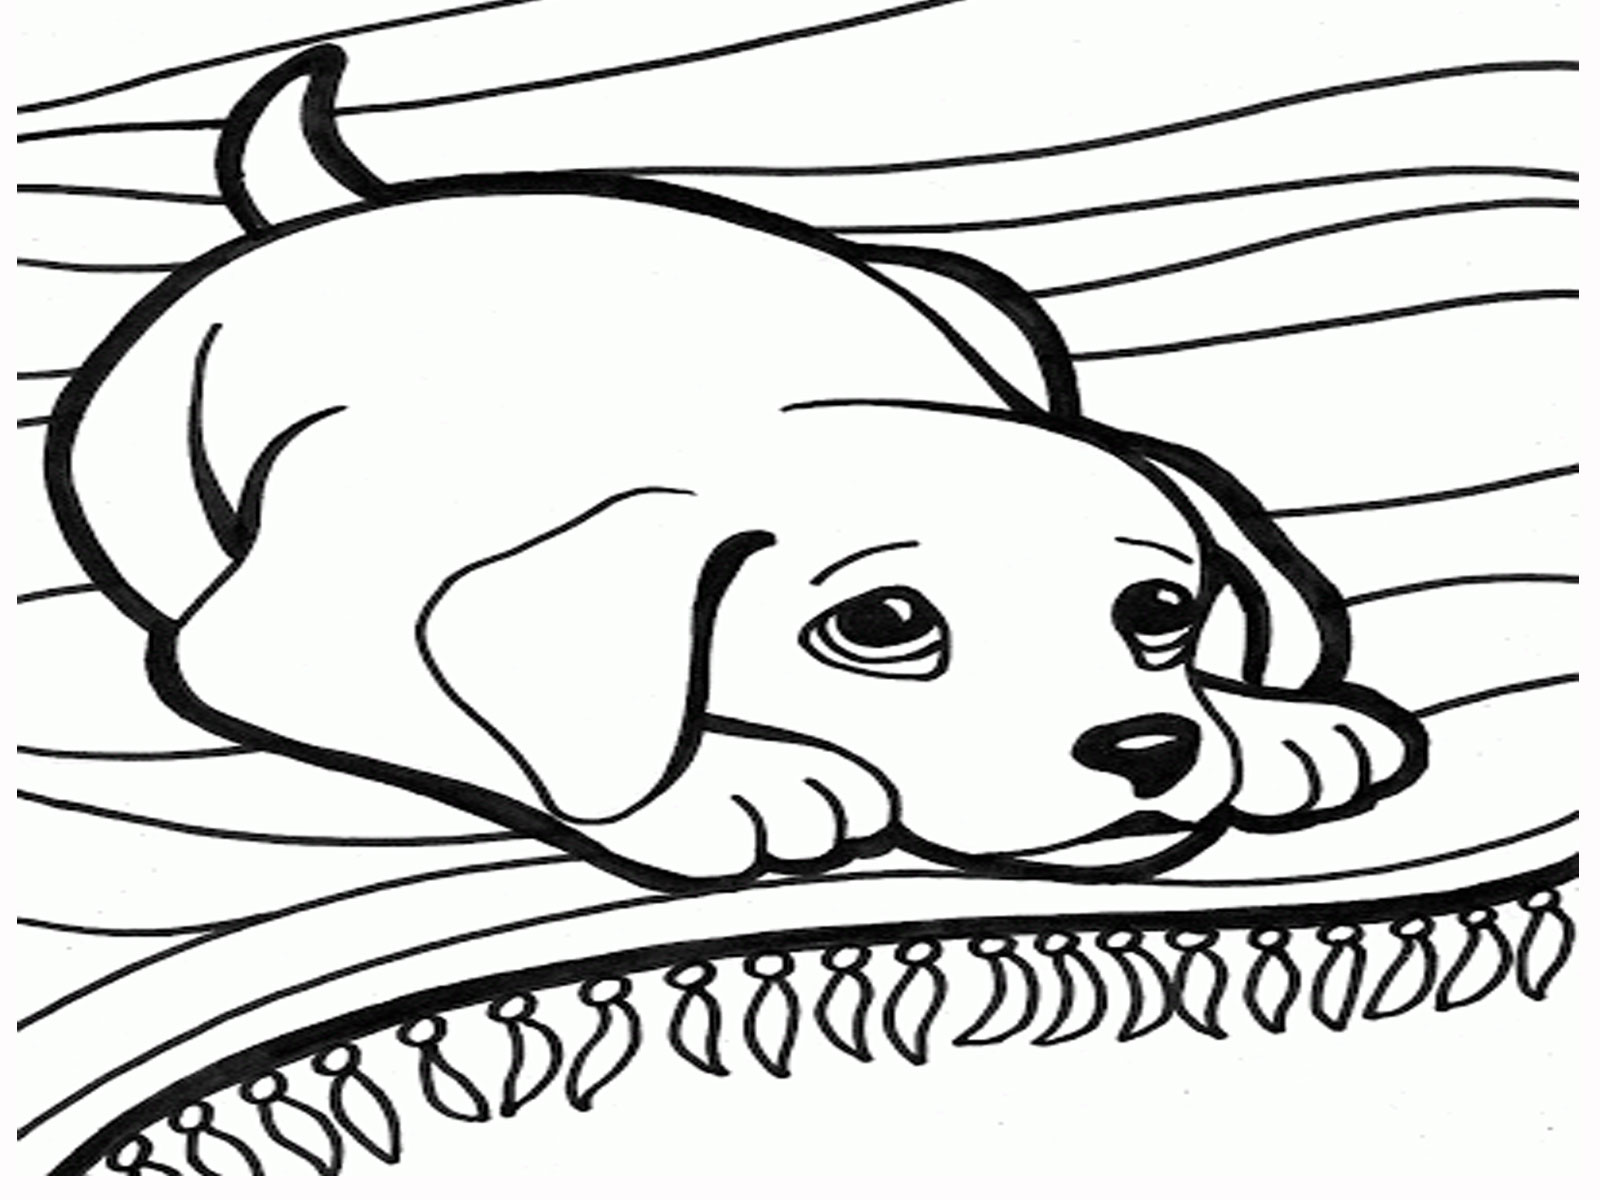 cats and dogs coloring pages - photo#17